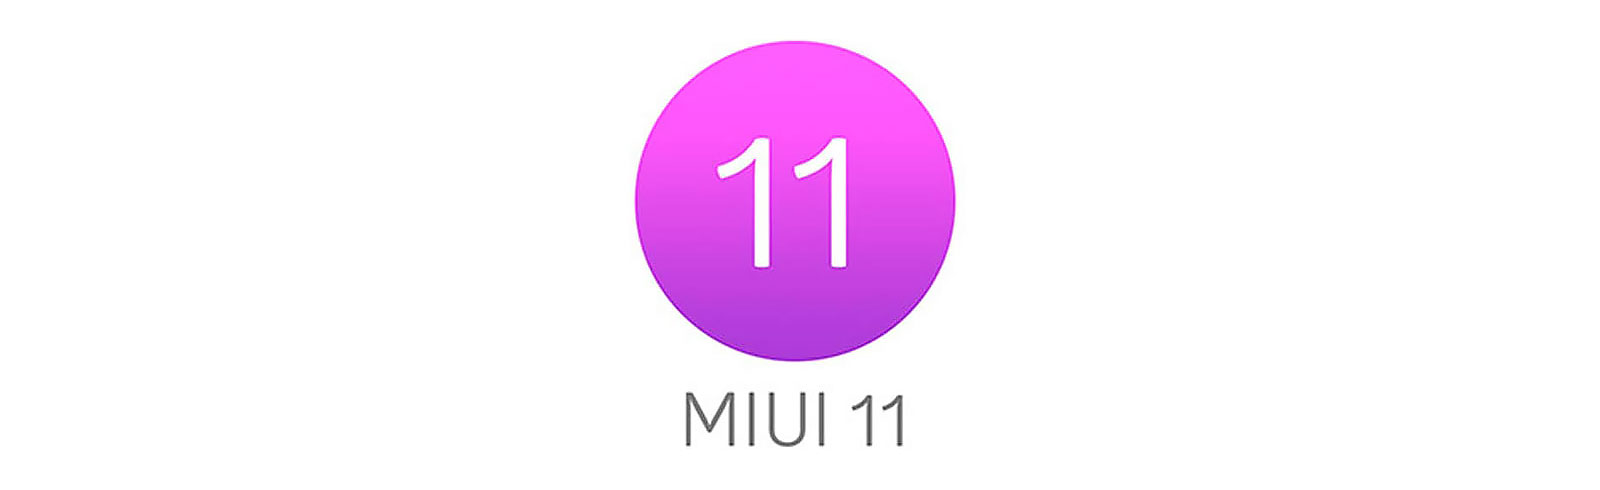 Xiaomi will launch MIUI 11 on August 9th